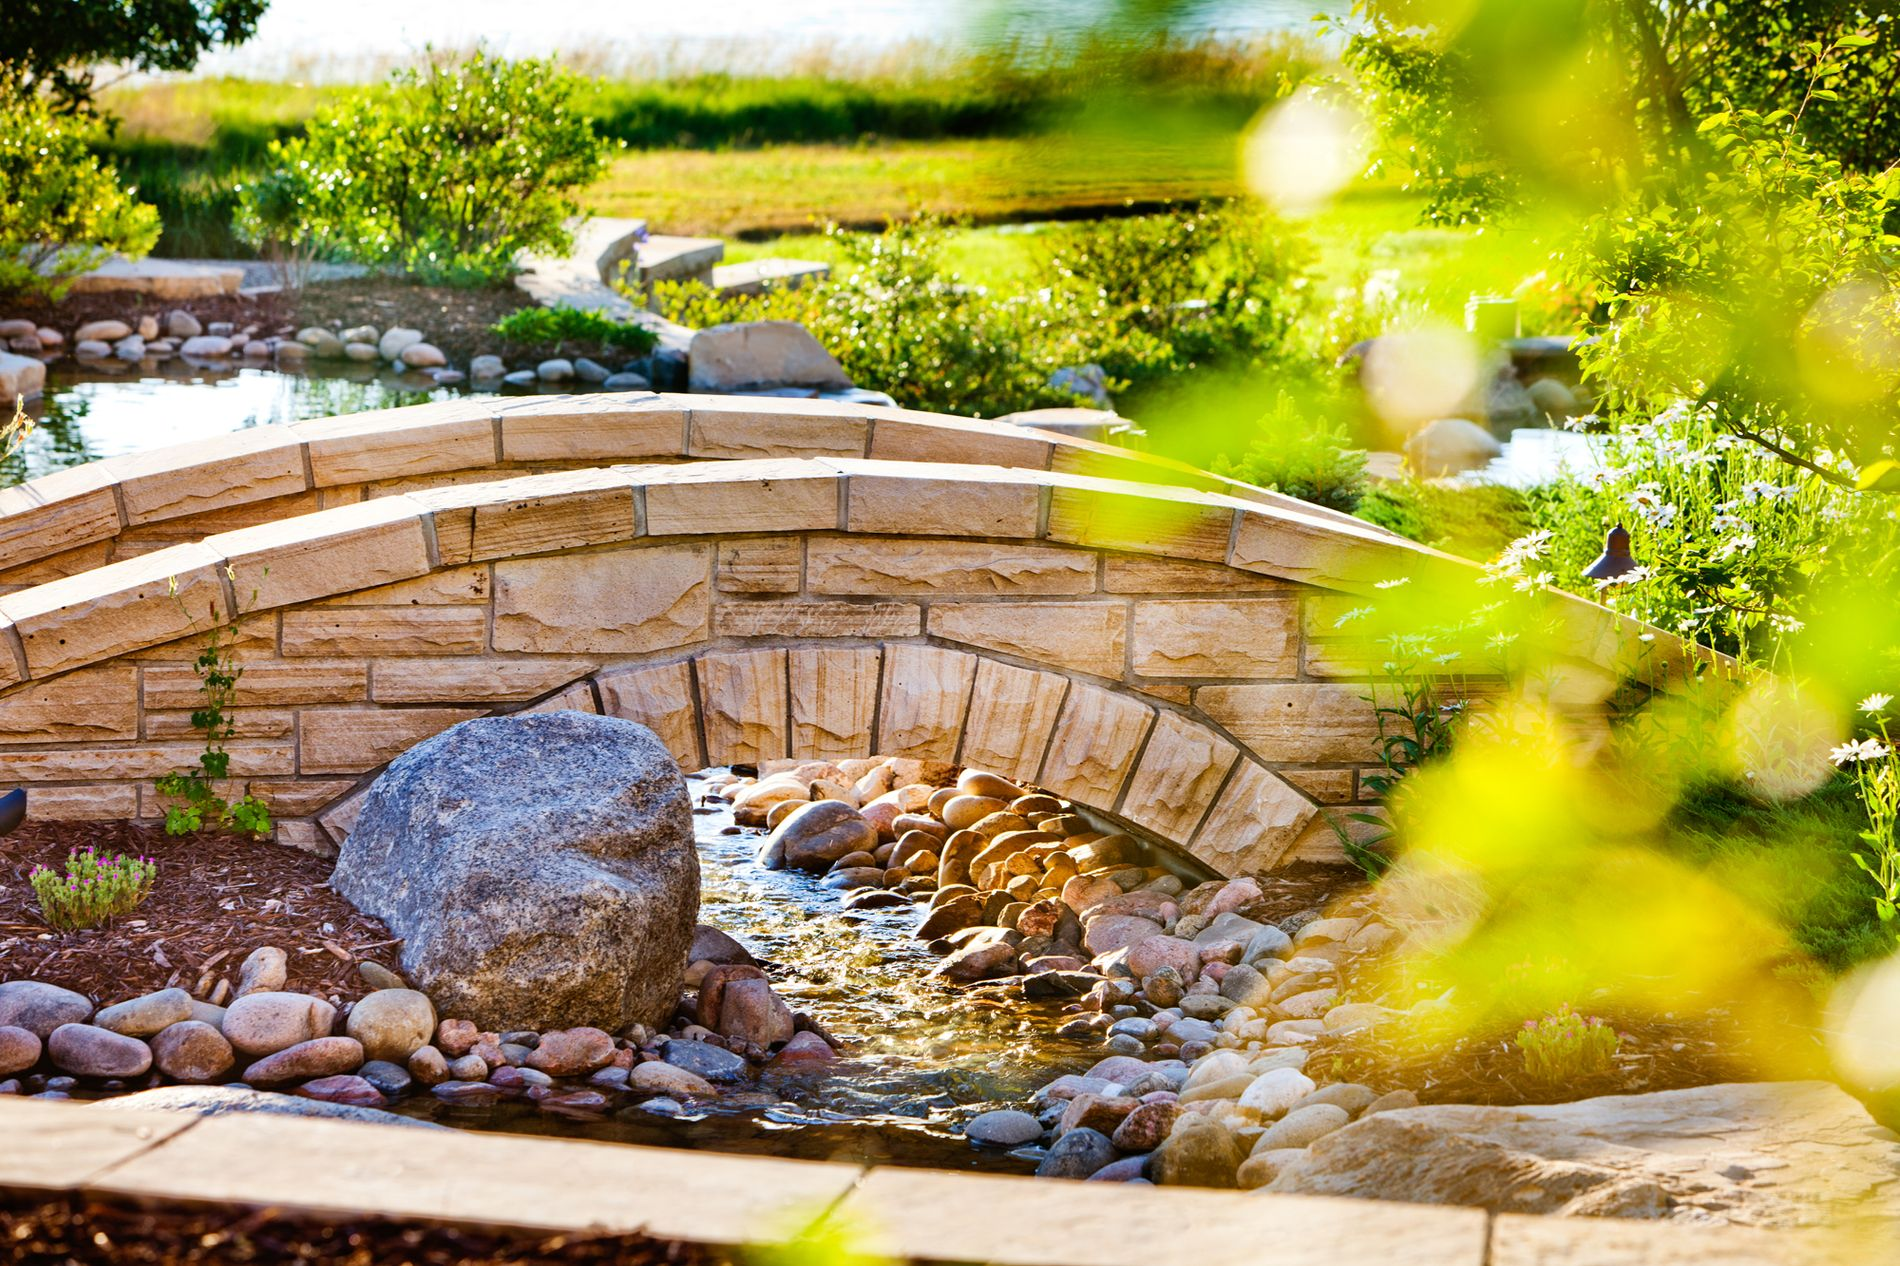 Masonry Bridge over Water Feature Stream